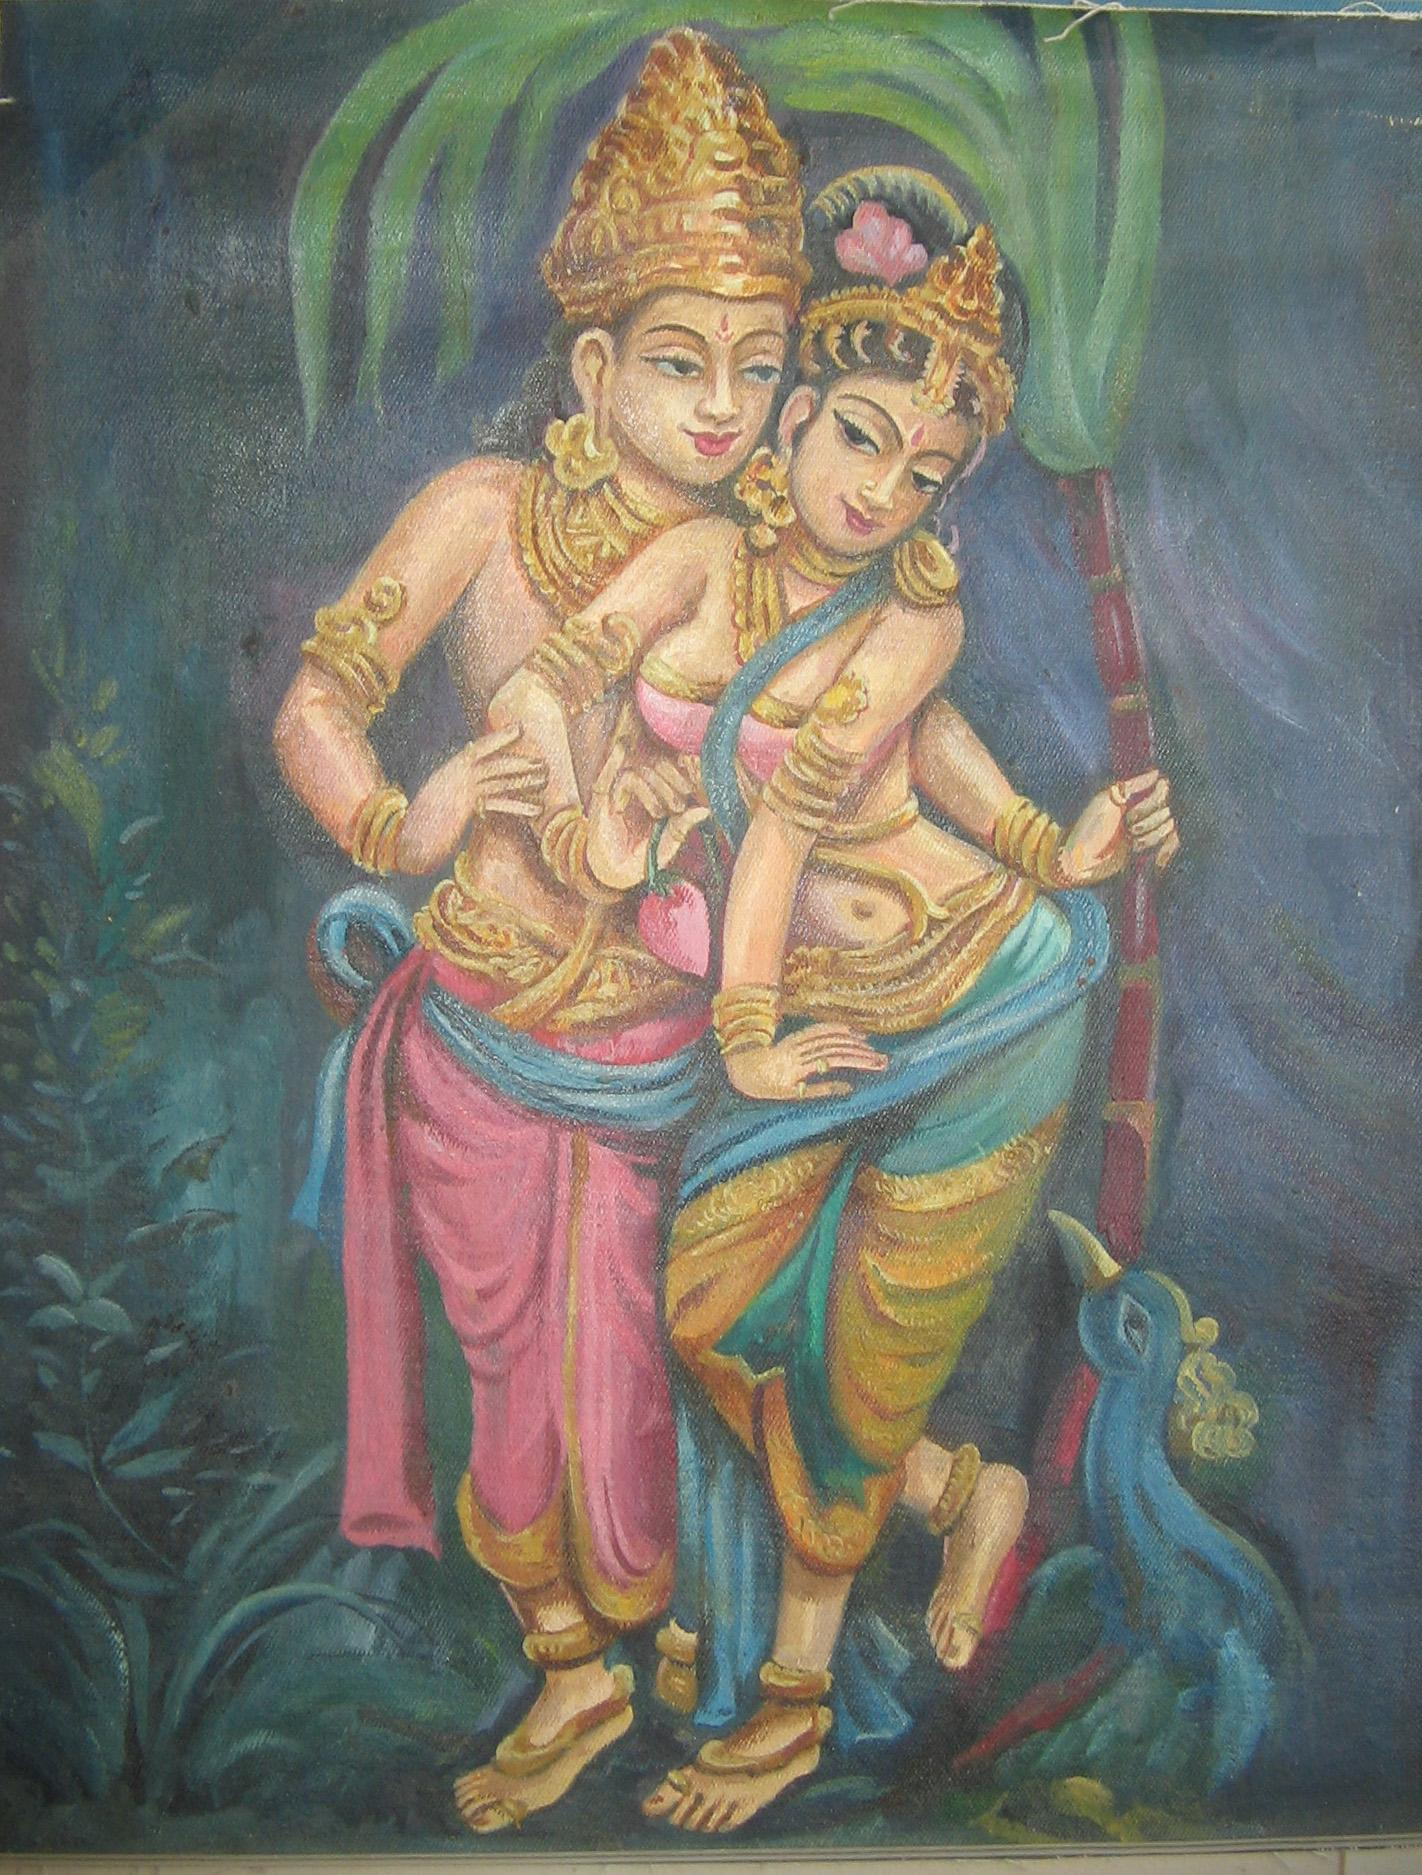 Through This Post We Shall Discuss In Detail About The World Of Traditional Indian Art